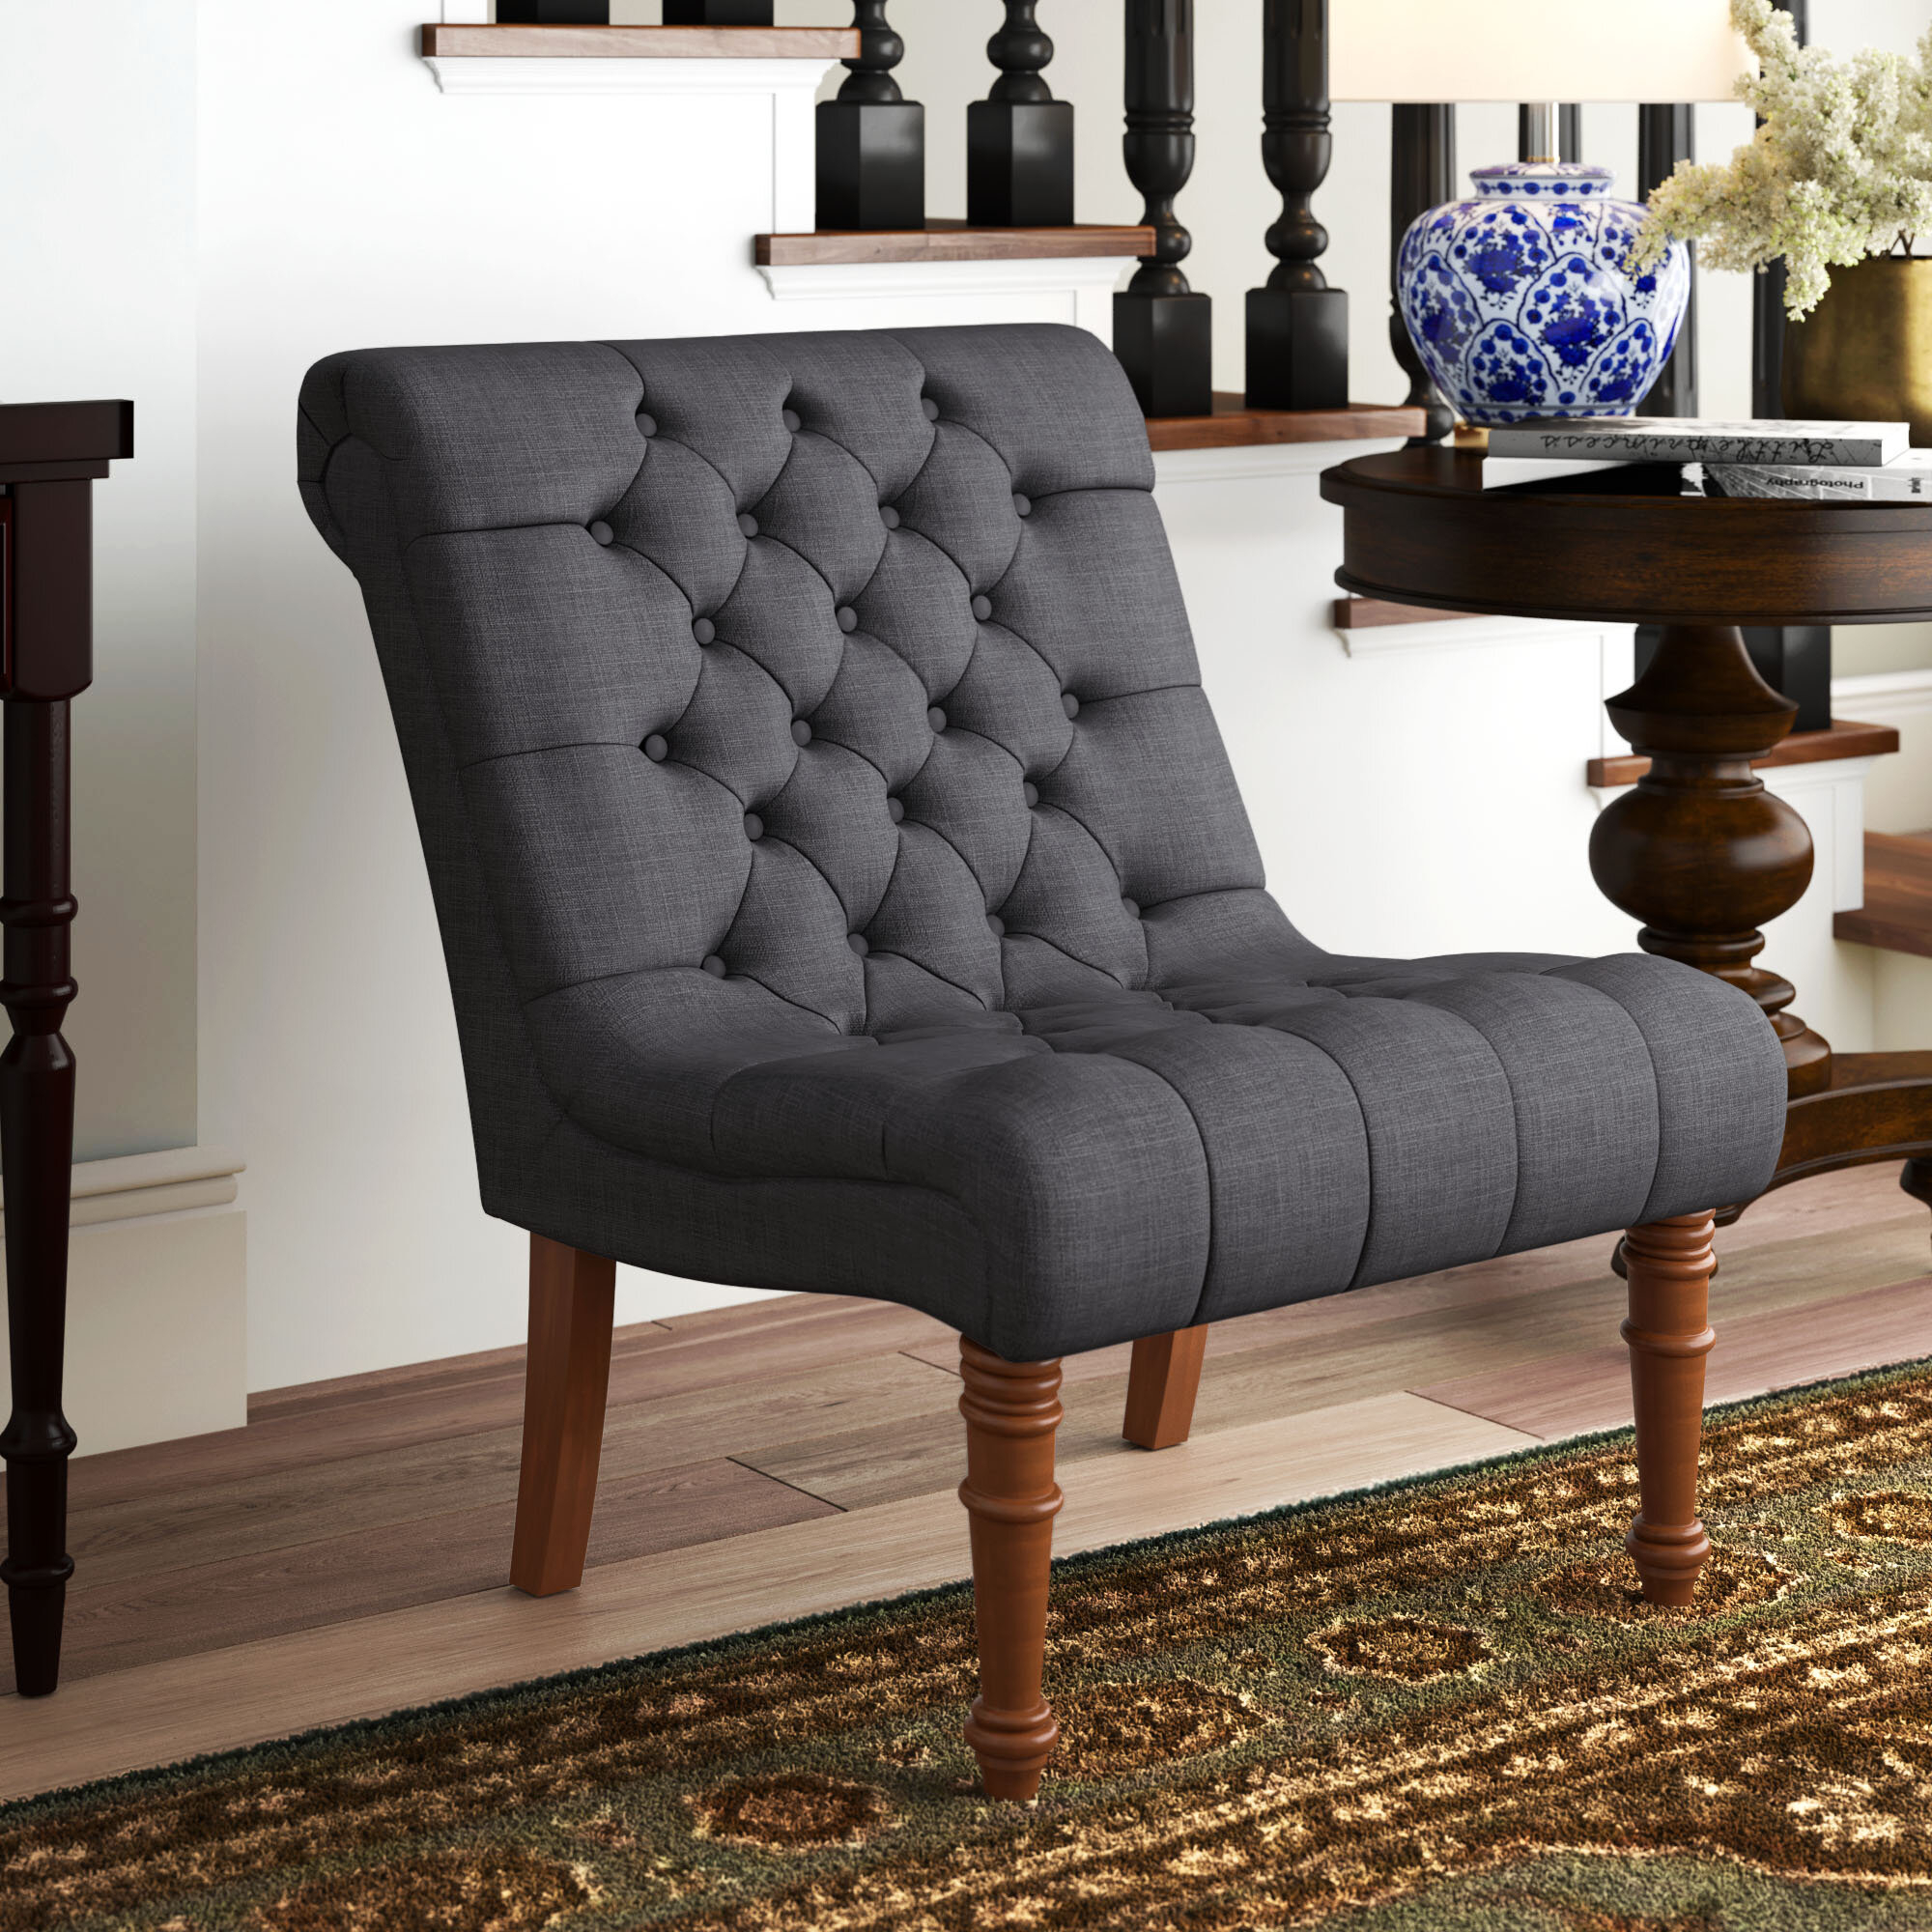 Grey Slipper Accent Chairs You'Ll Love In 2021 | Wayfair Pertaining To Goodspeed Slipper Chairs (Set Of 2) (View 7 of 15)